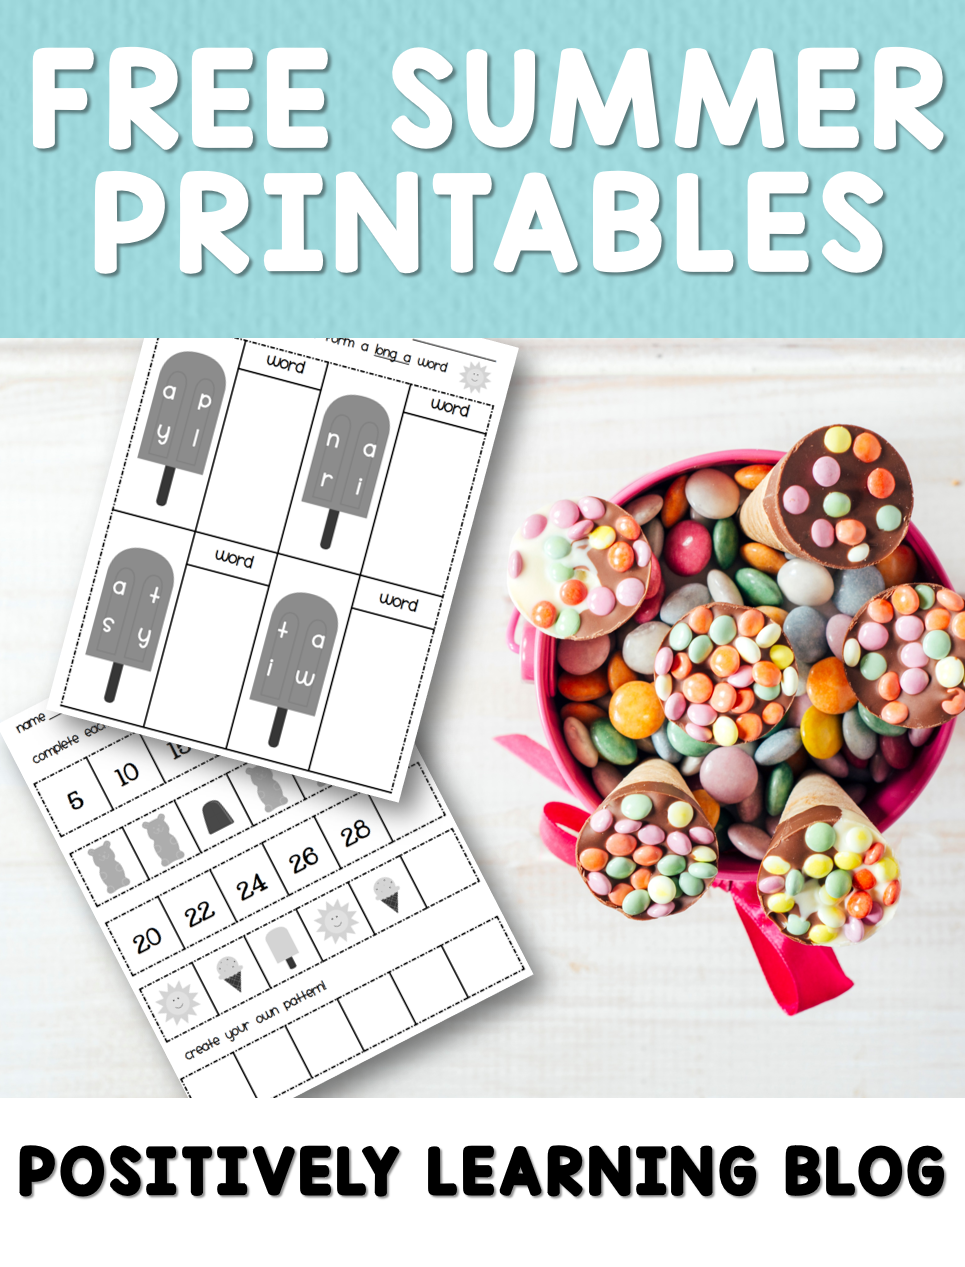 Free Summer Printables! Have a sweet summer from Positively Learning Blog